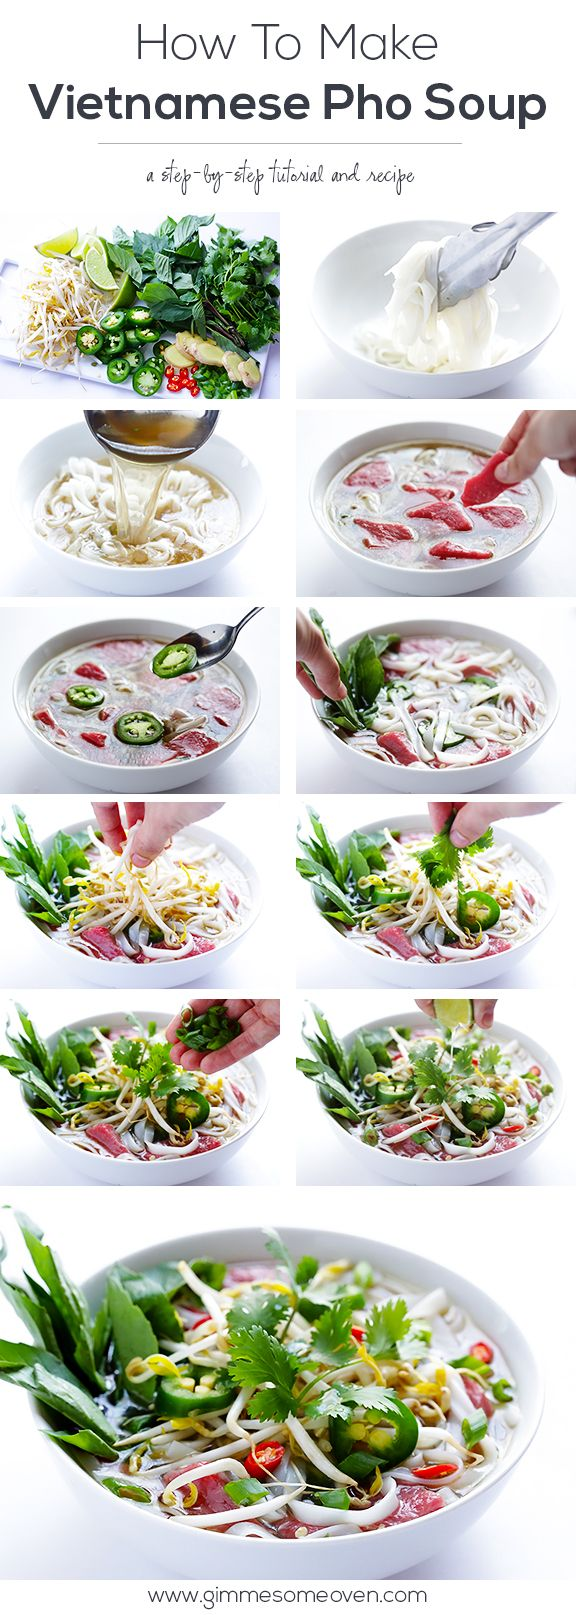 How to Make Vietnamese Pho Soup Recipe | gimmesomeoven.com